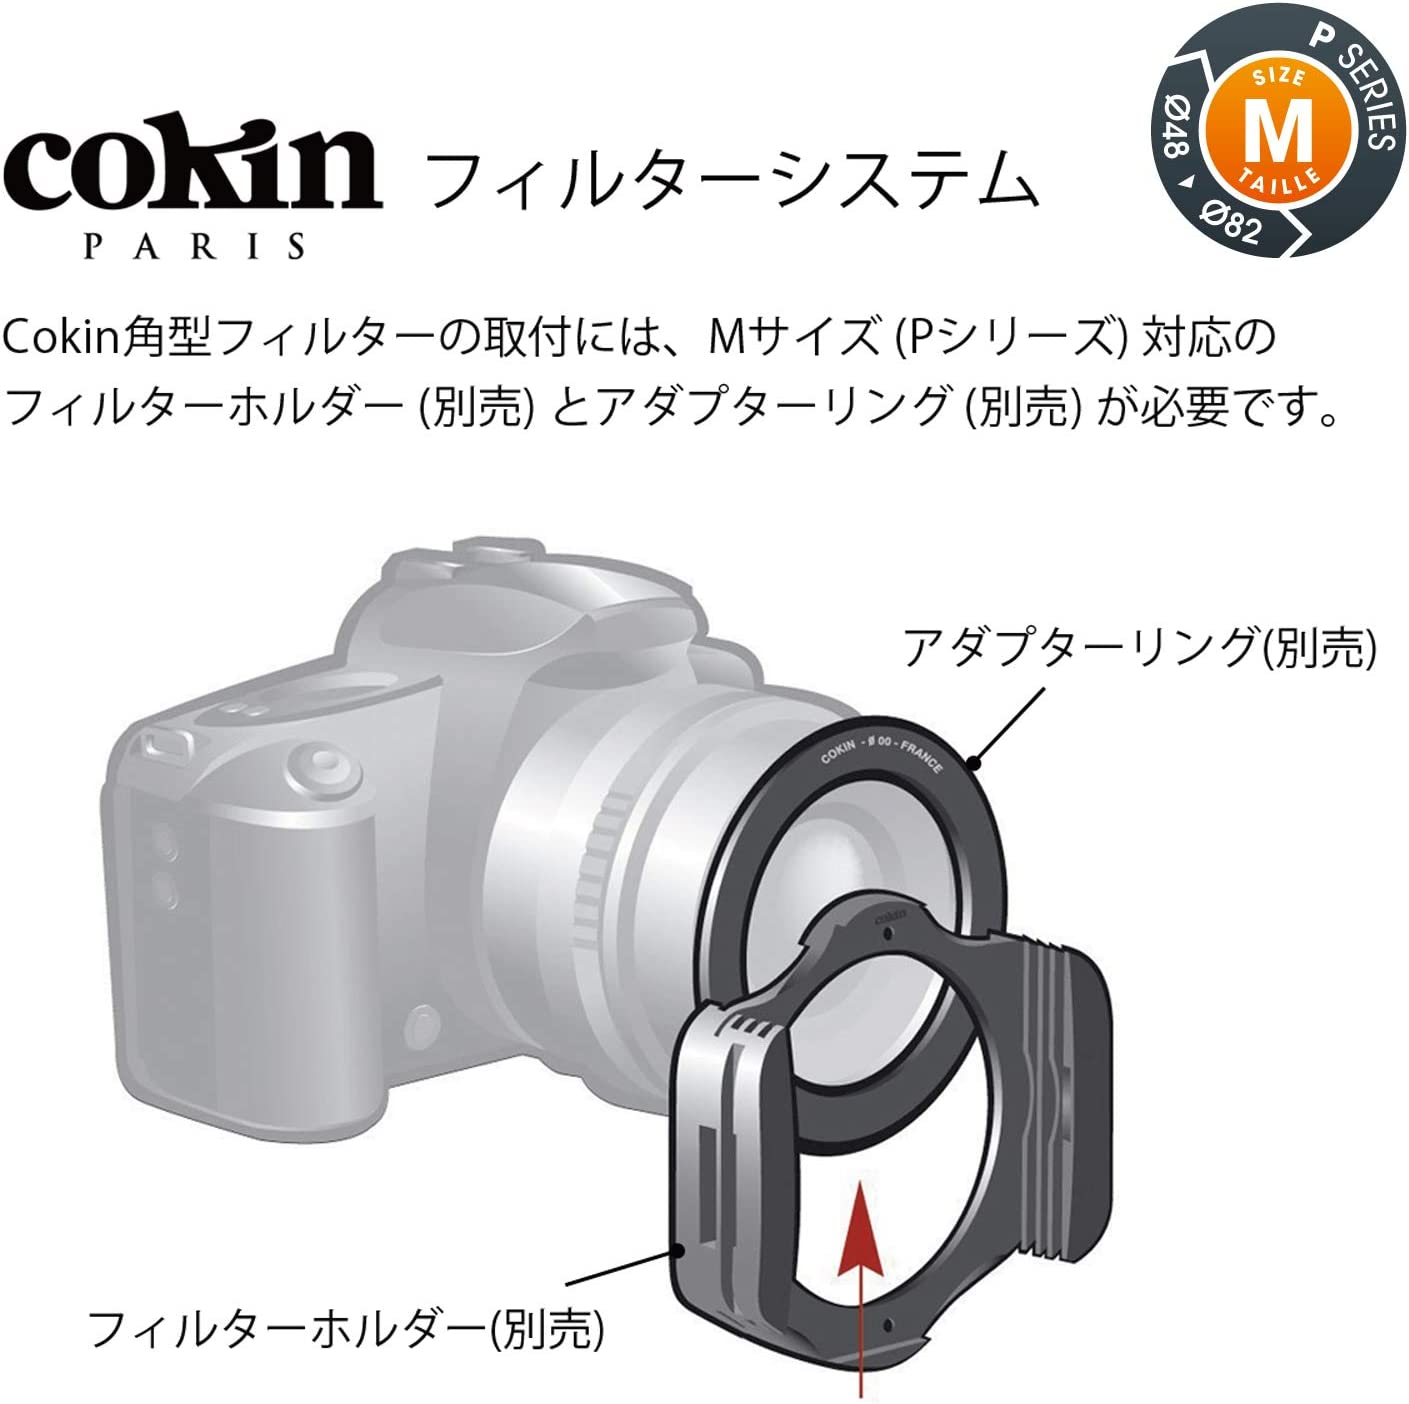 GND8 Cokin Square Filter NUANCES Extreme Includes M R-GND4 Filters Series ND1024 Smart Kit P